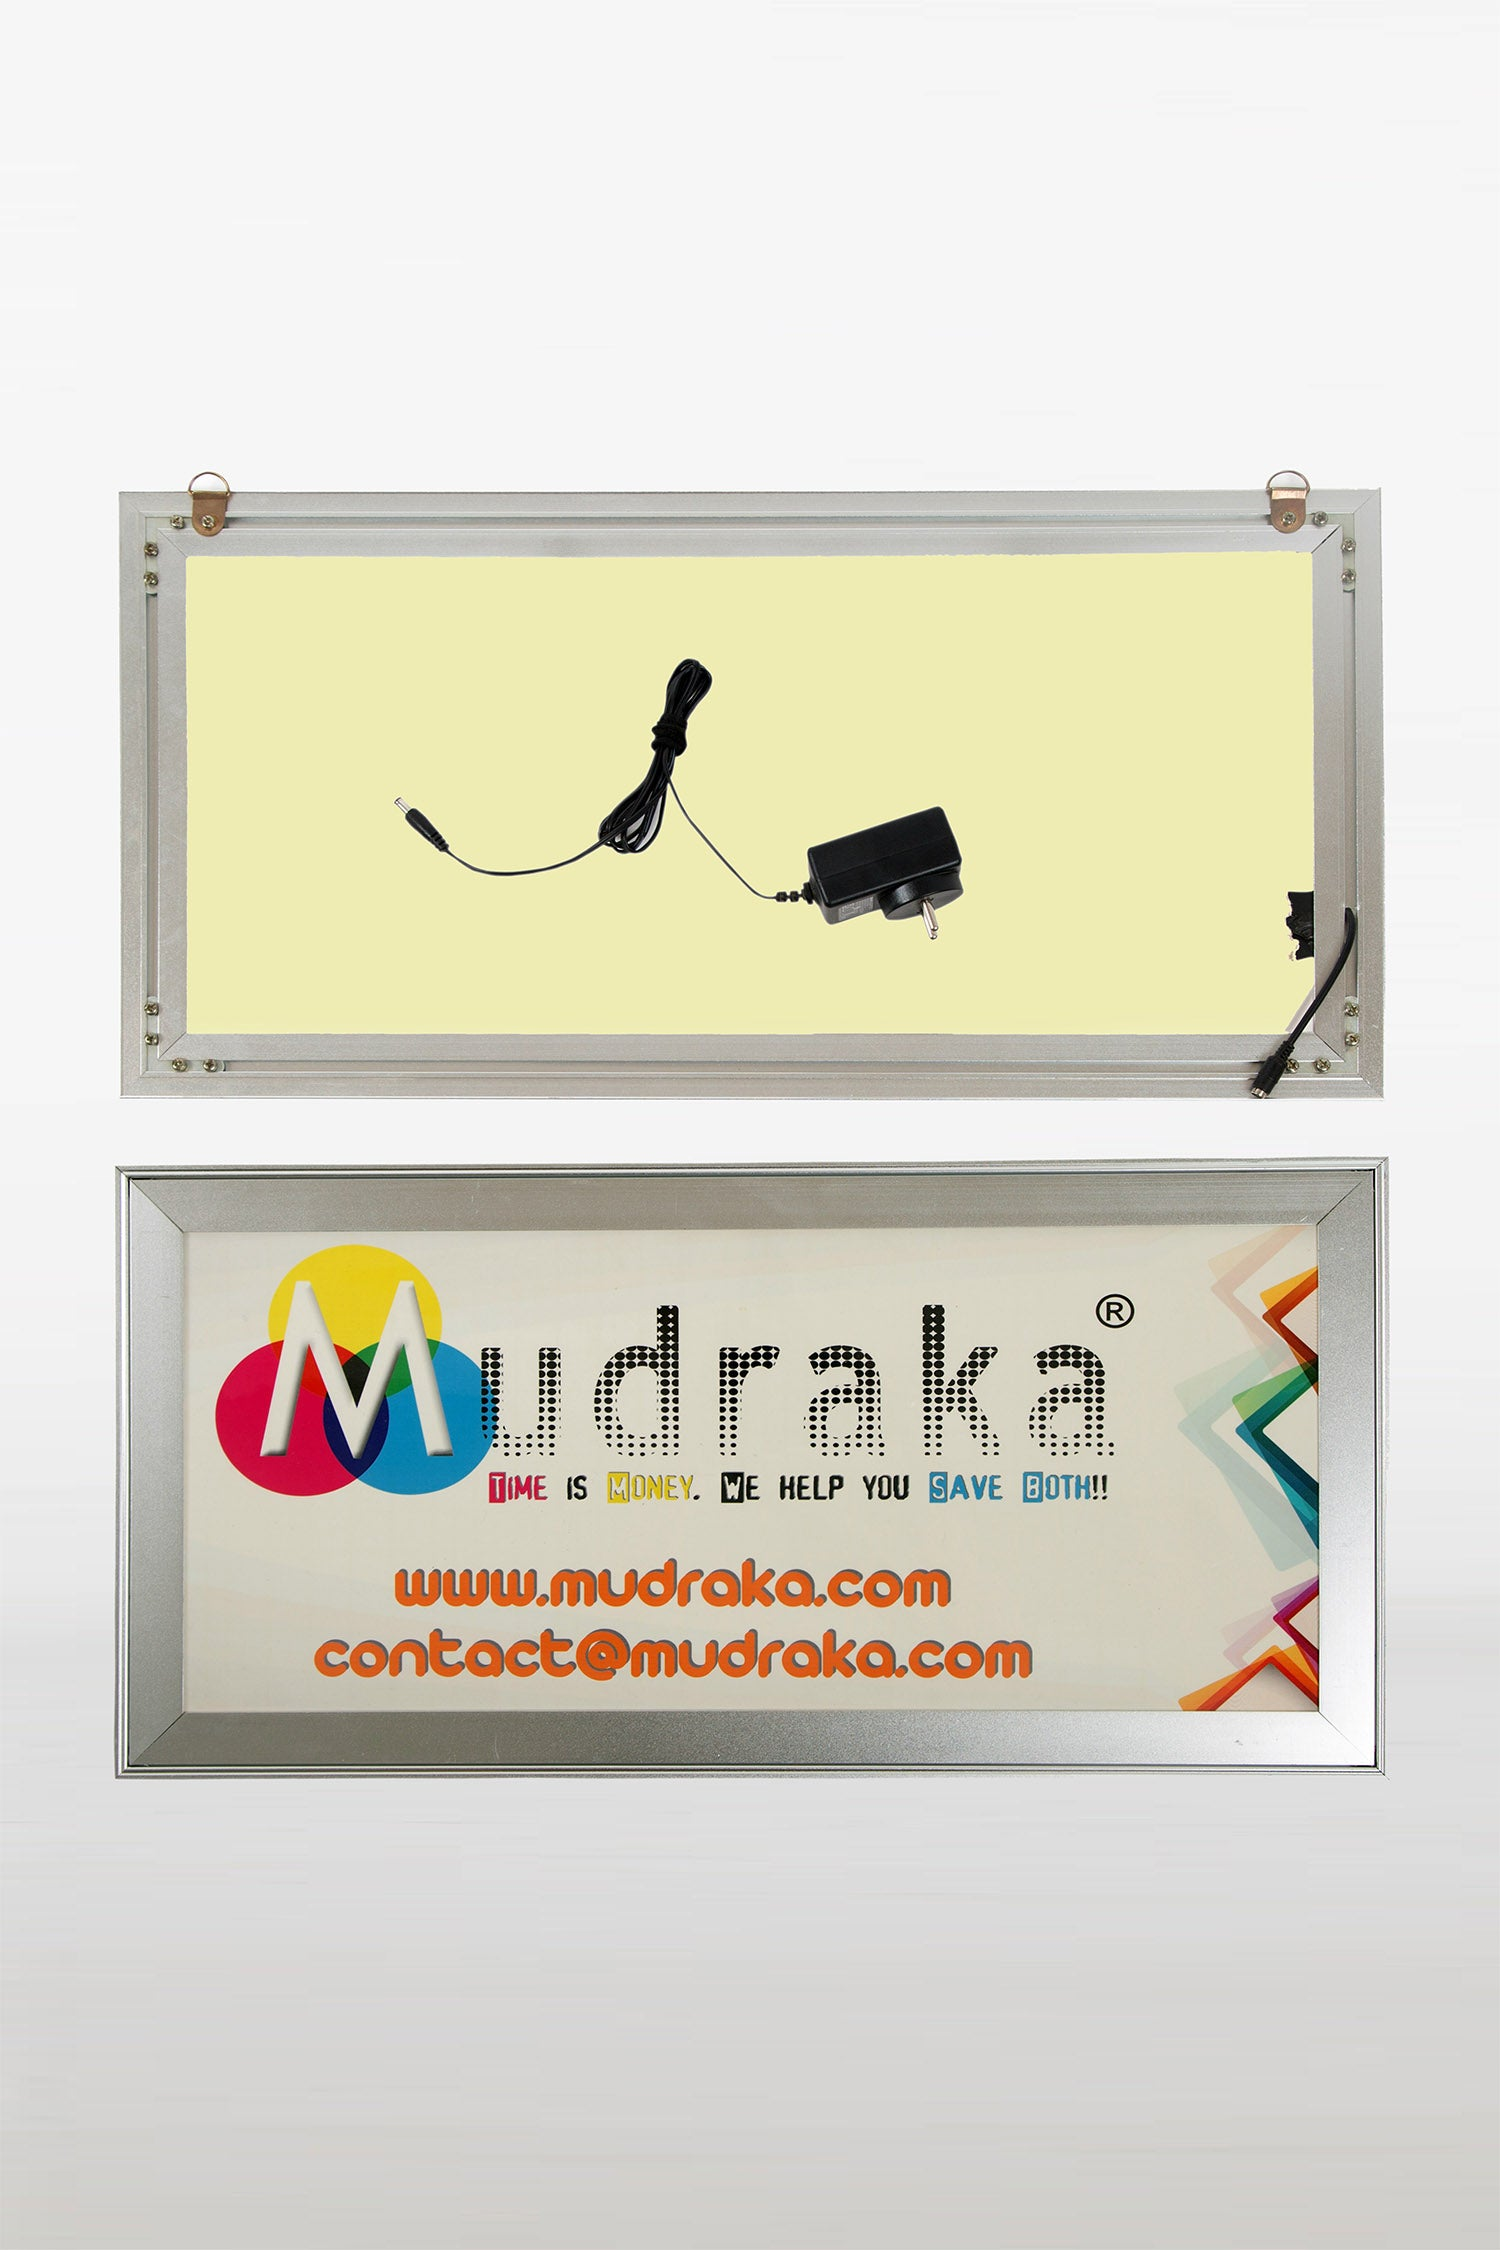 LED Backlit Board - With Replaceable Digital Printing - 10 mm Thick